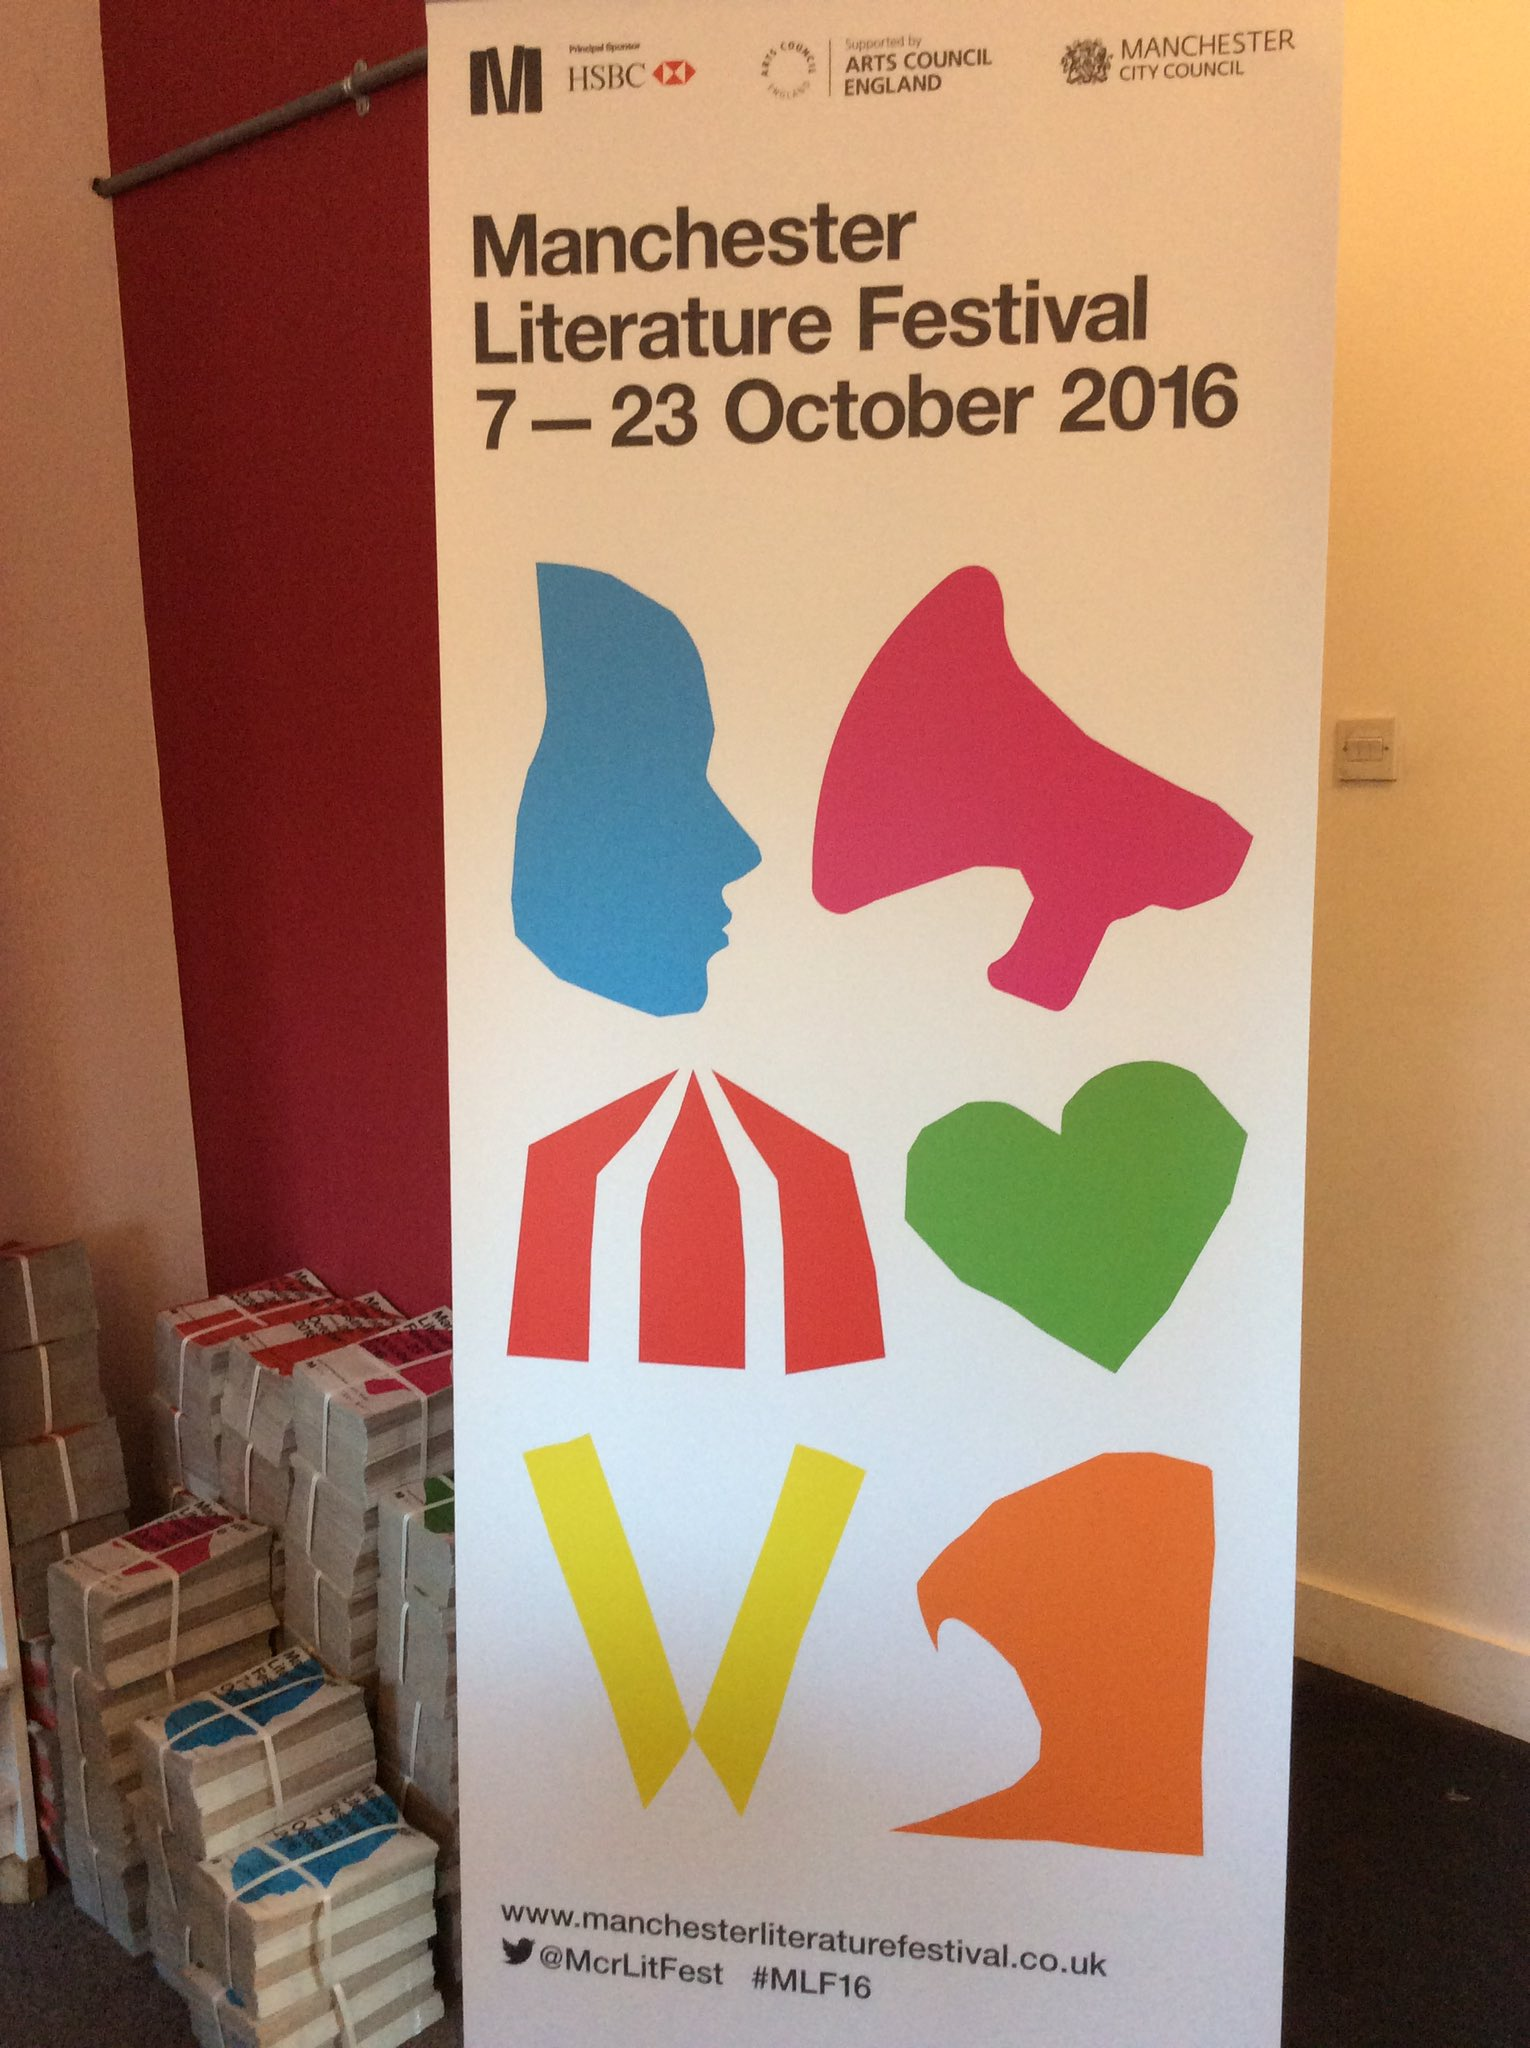 The banners for this #MLF16 have arrived and we think they look pretty darn lovely... https://t.co/oVI0HhEj2x